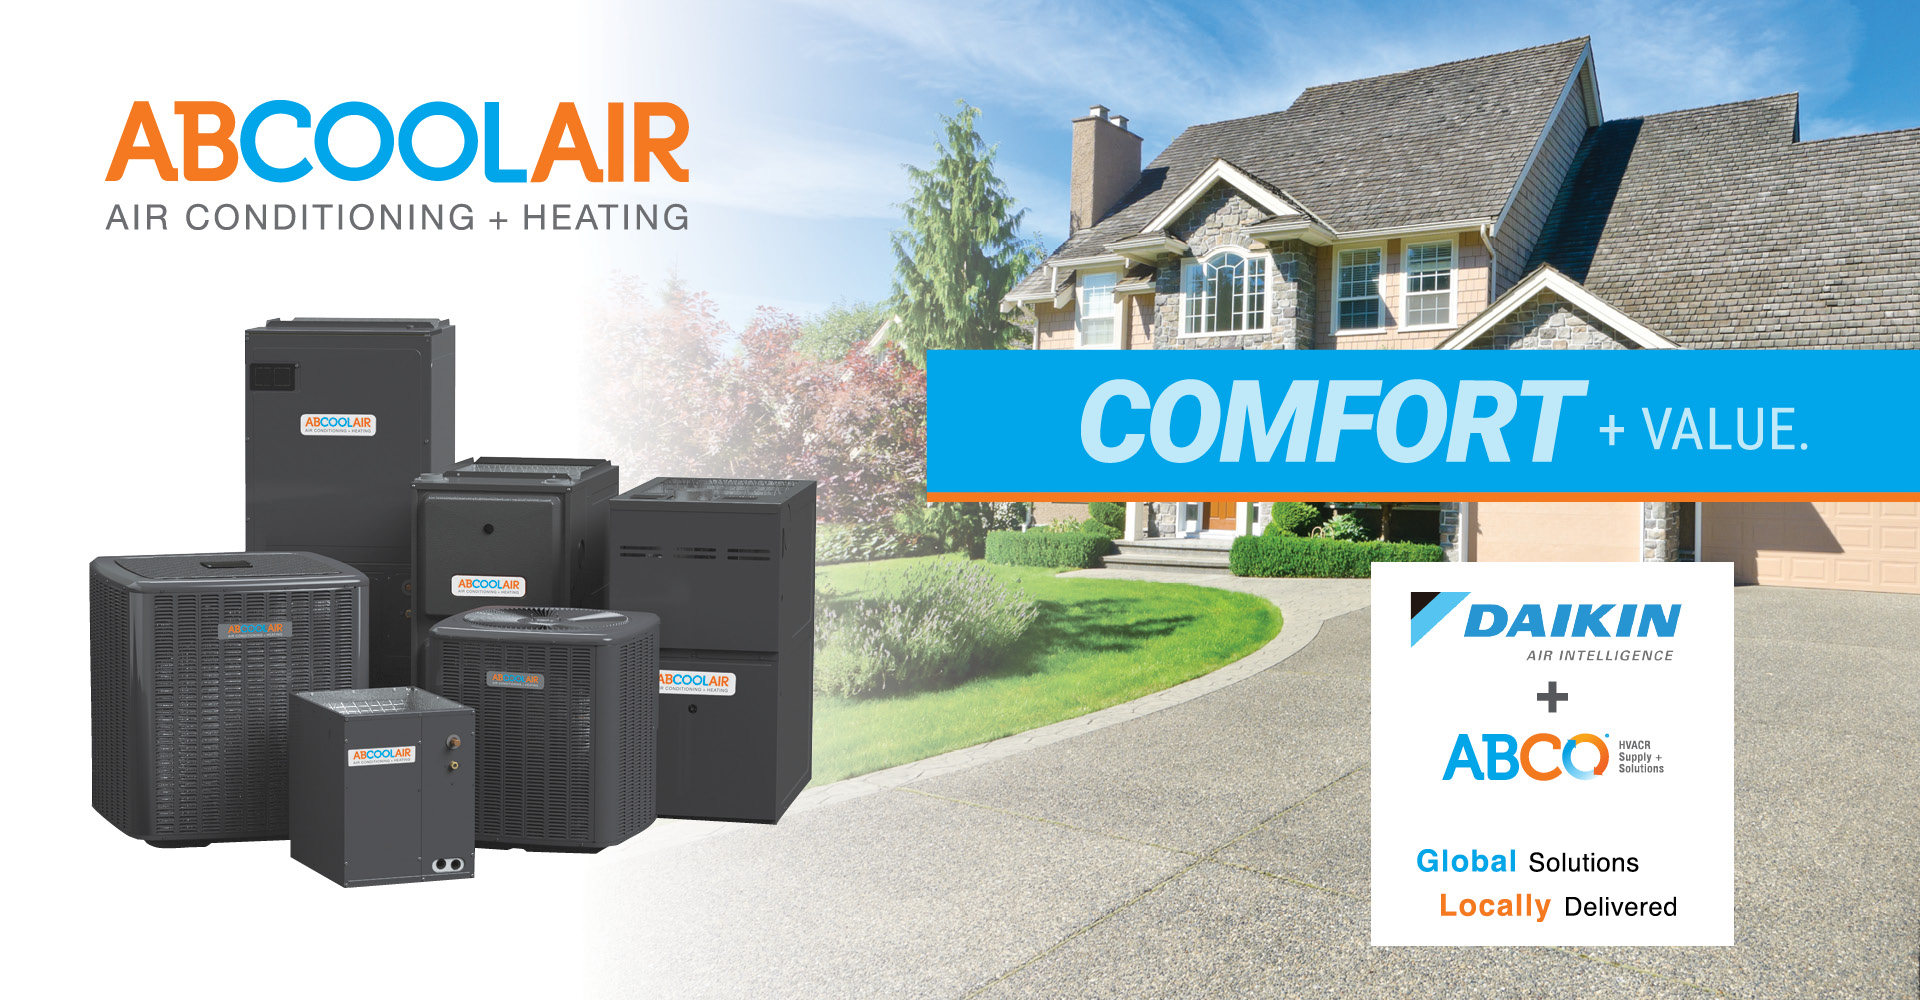 Energy-Saving Efficiency with ABCOOLAIR